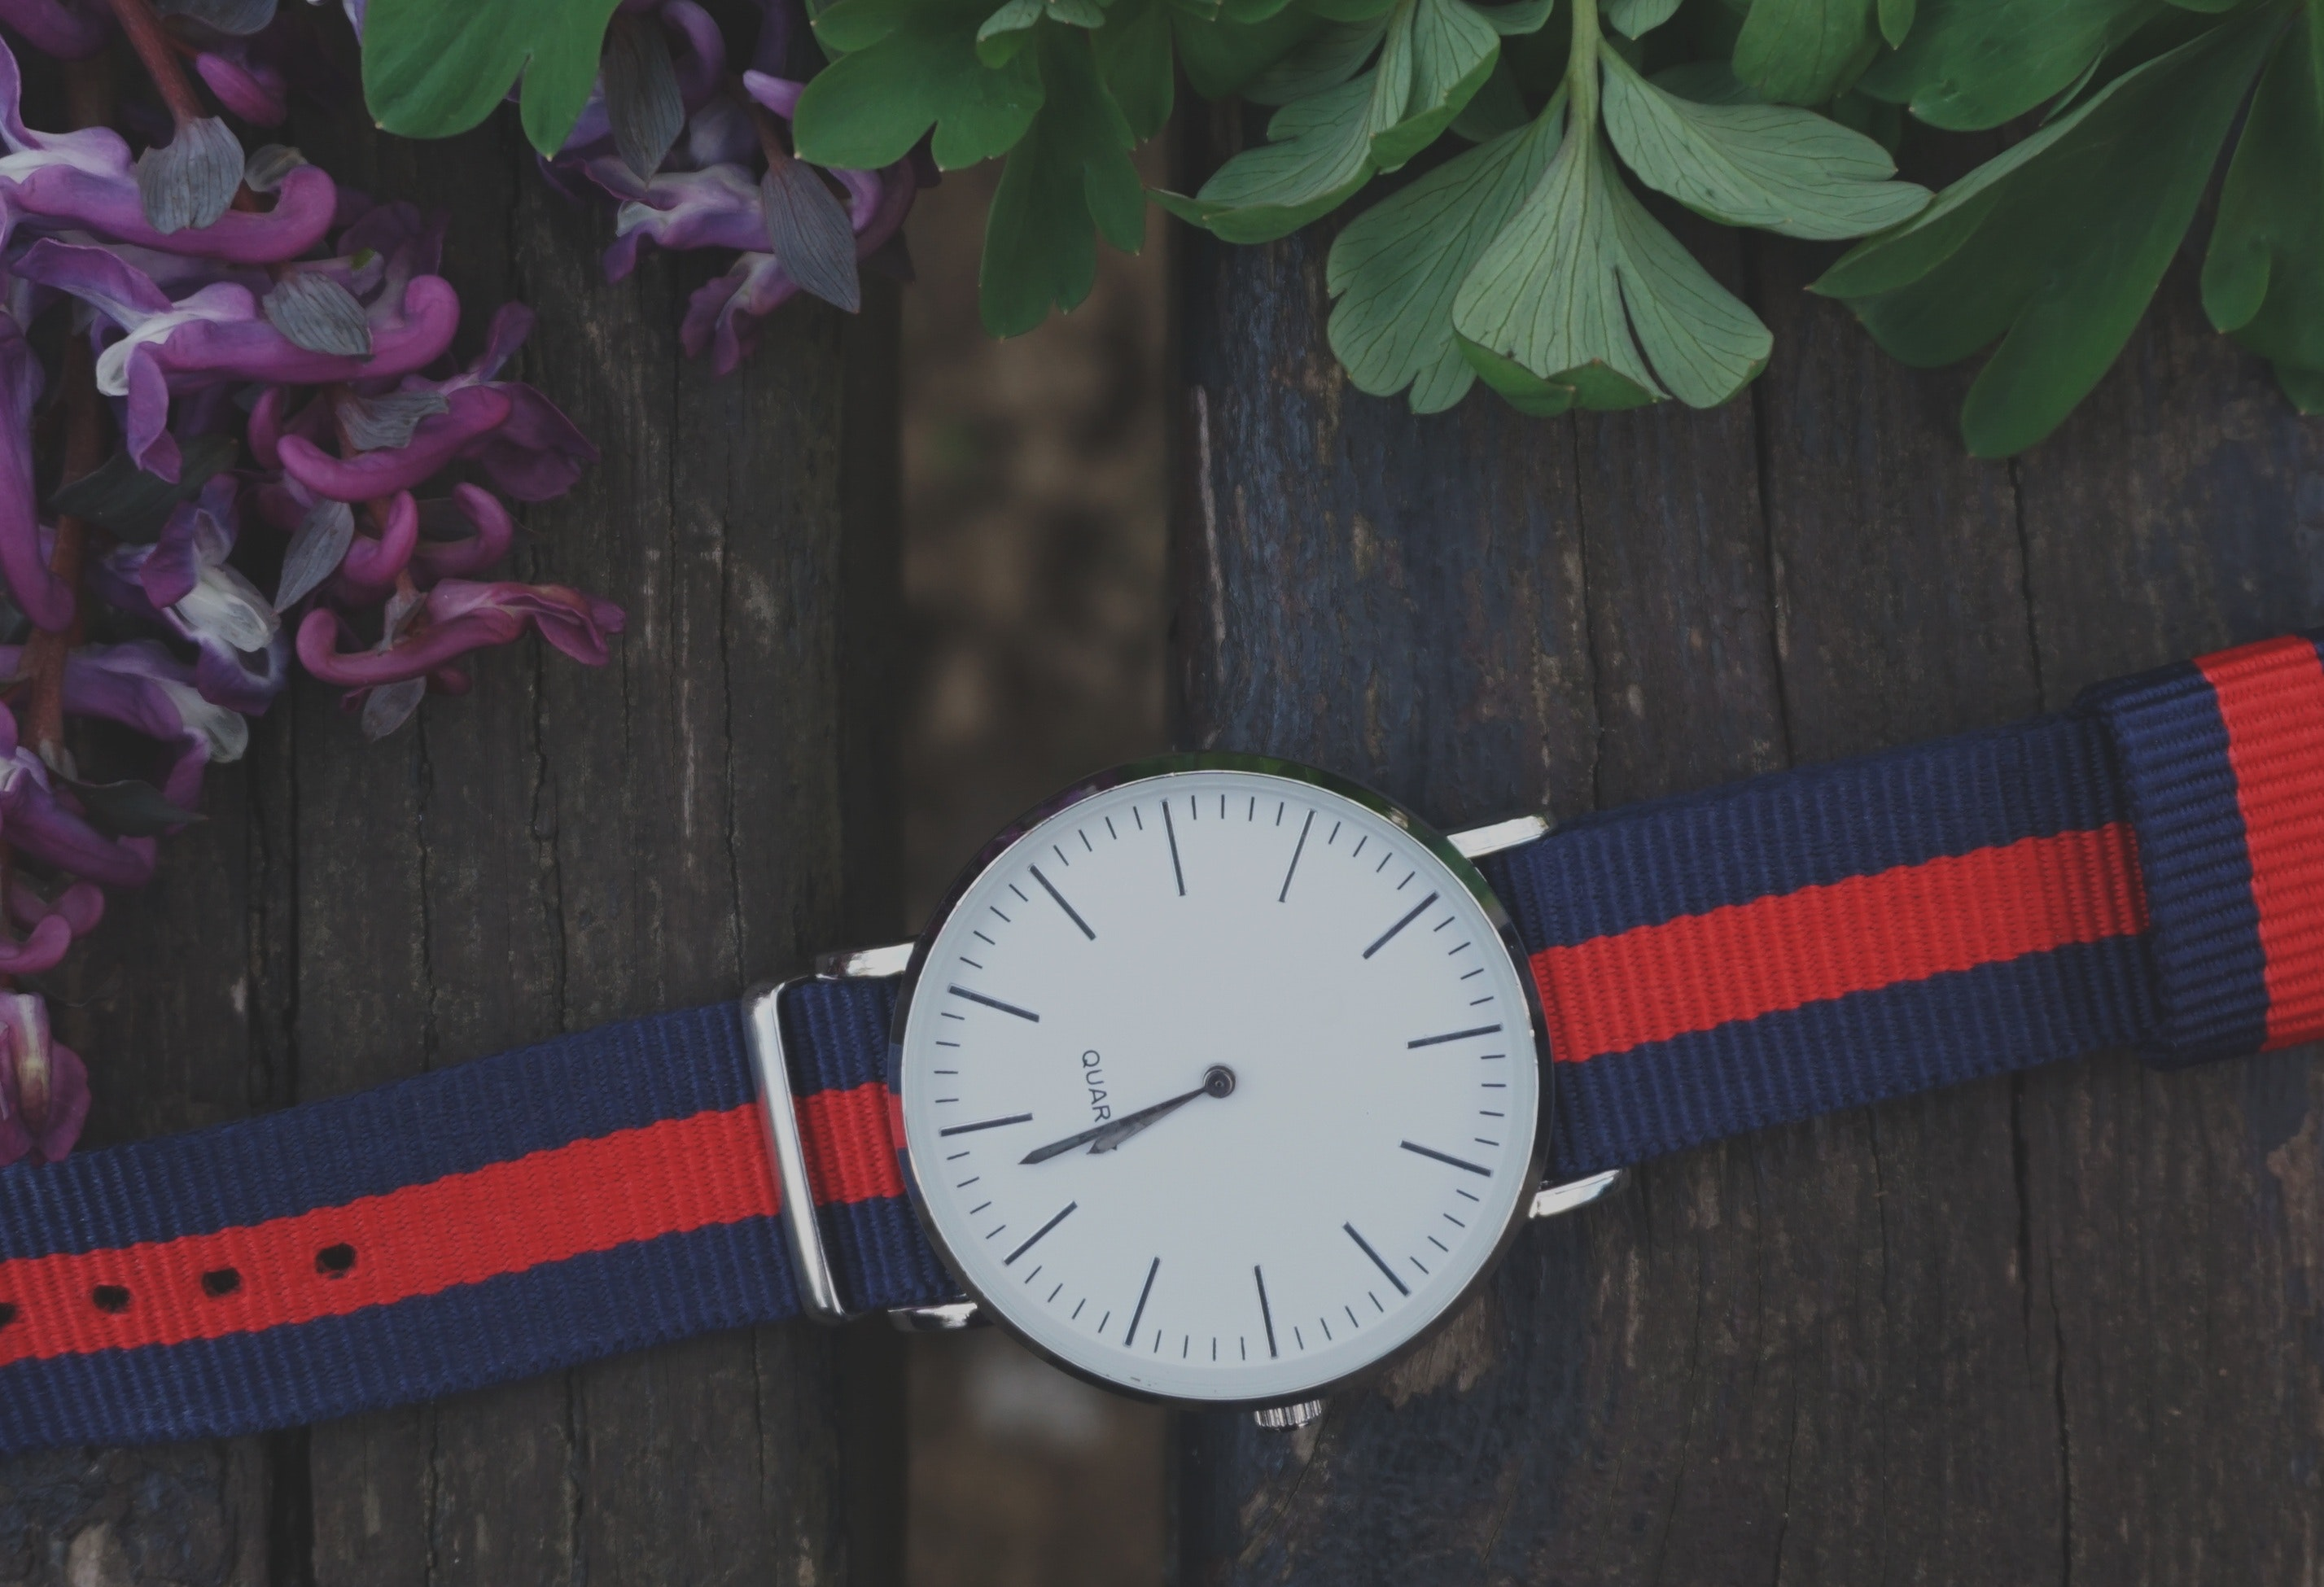 Blue and Red Strap Silver Round Analog Watch Beside Purple and Green Leaf Plant, Accessory, Analog watch, Design, Flora, HQ Photo